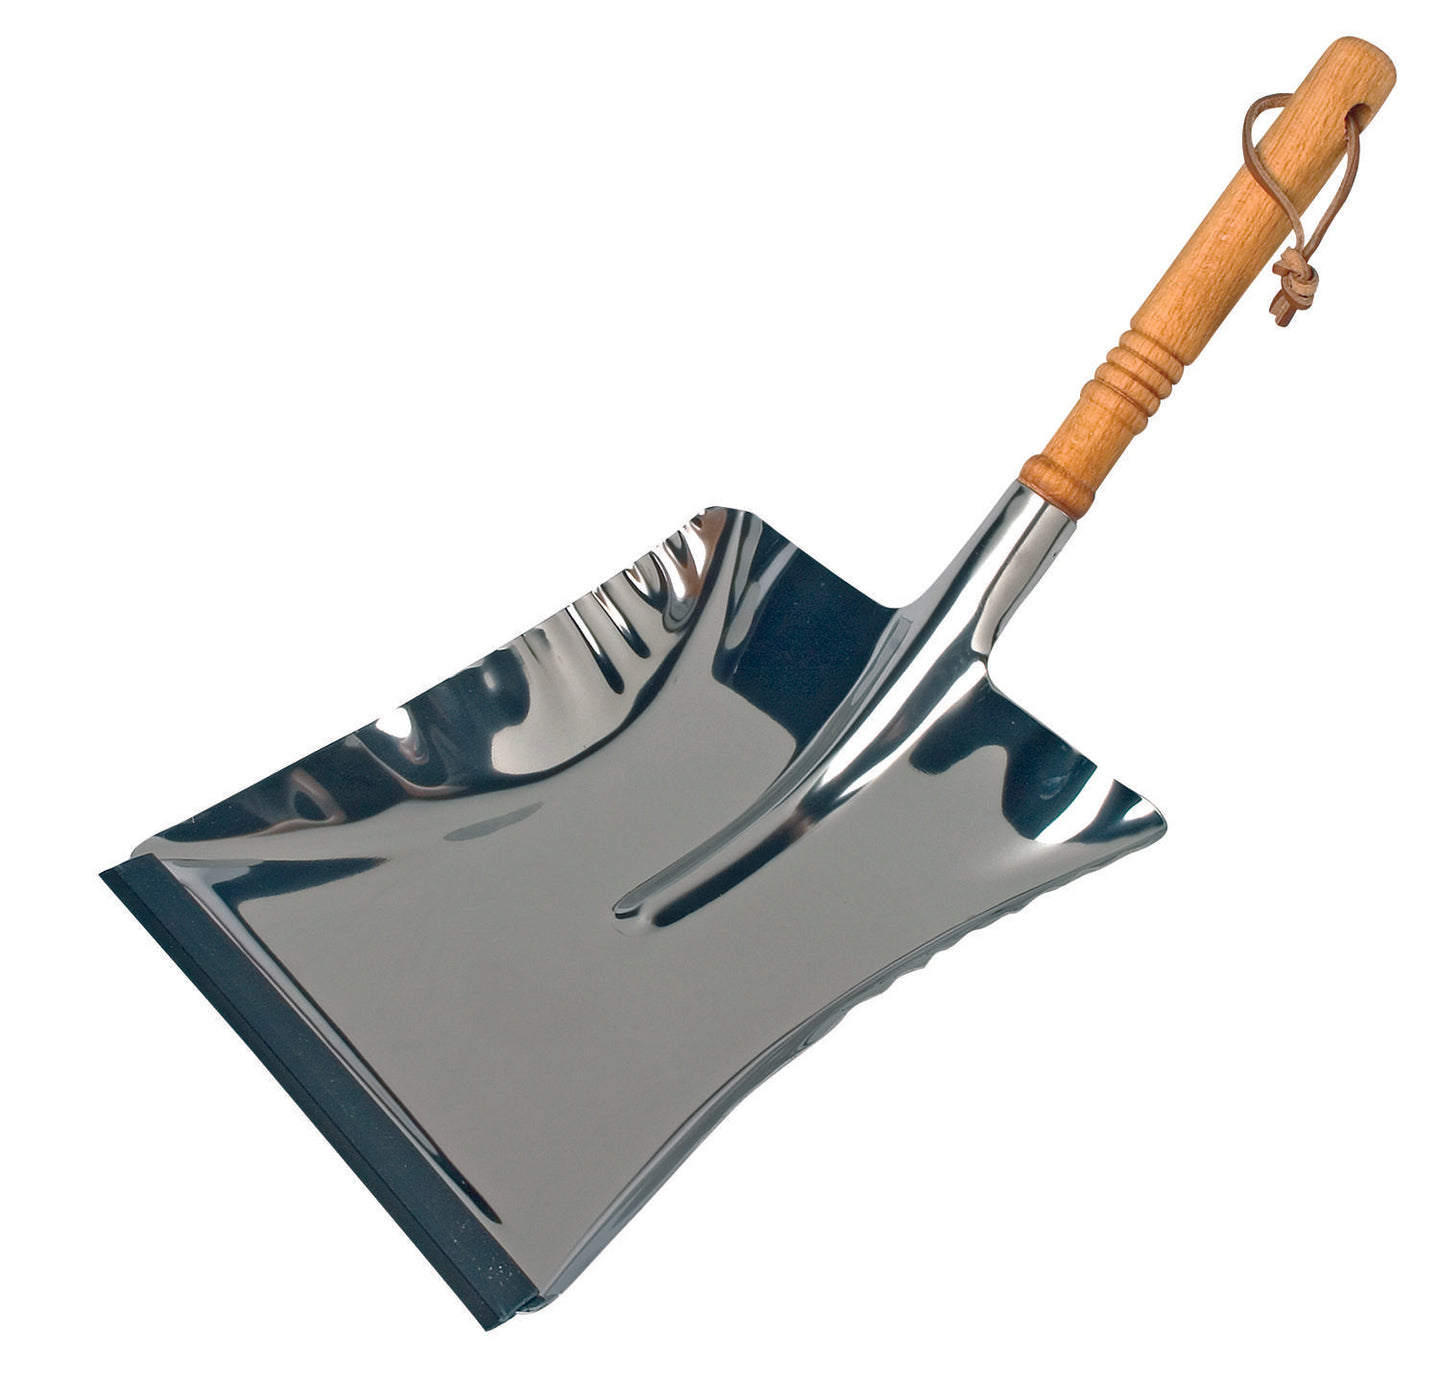 Redecker Stainless steel dustpan - 33cm x 45cm long